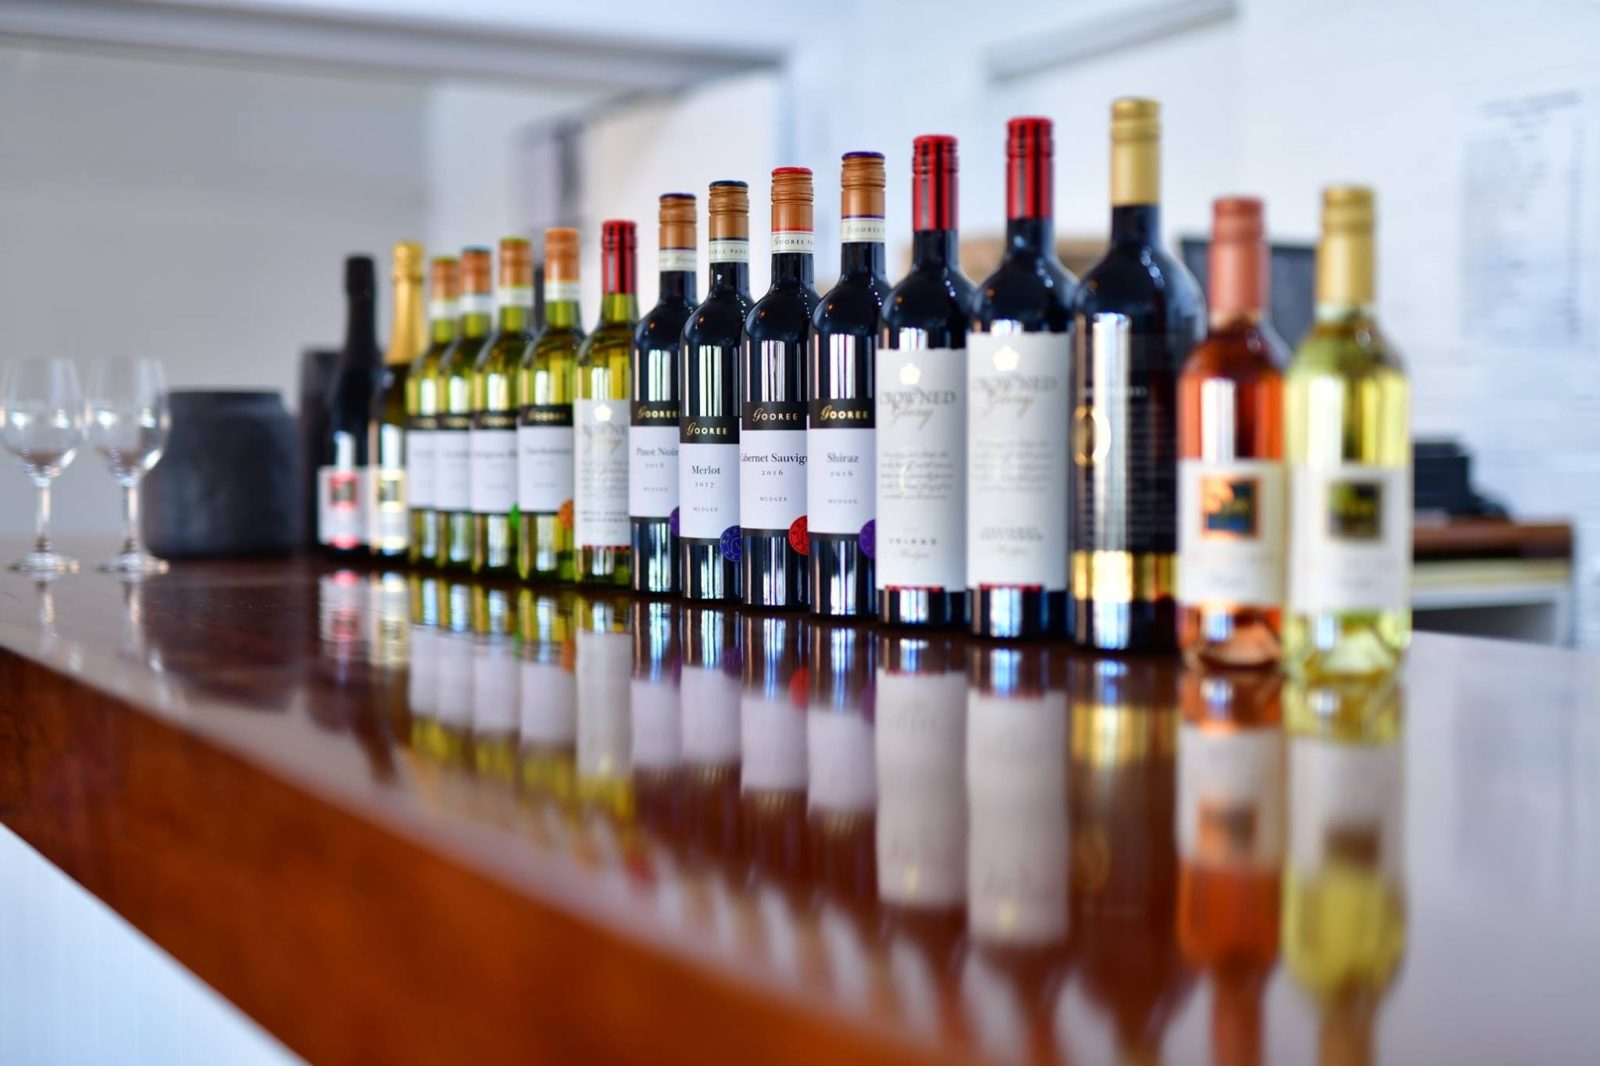 The Gooree Park Wine Selection Line up